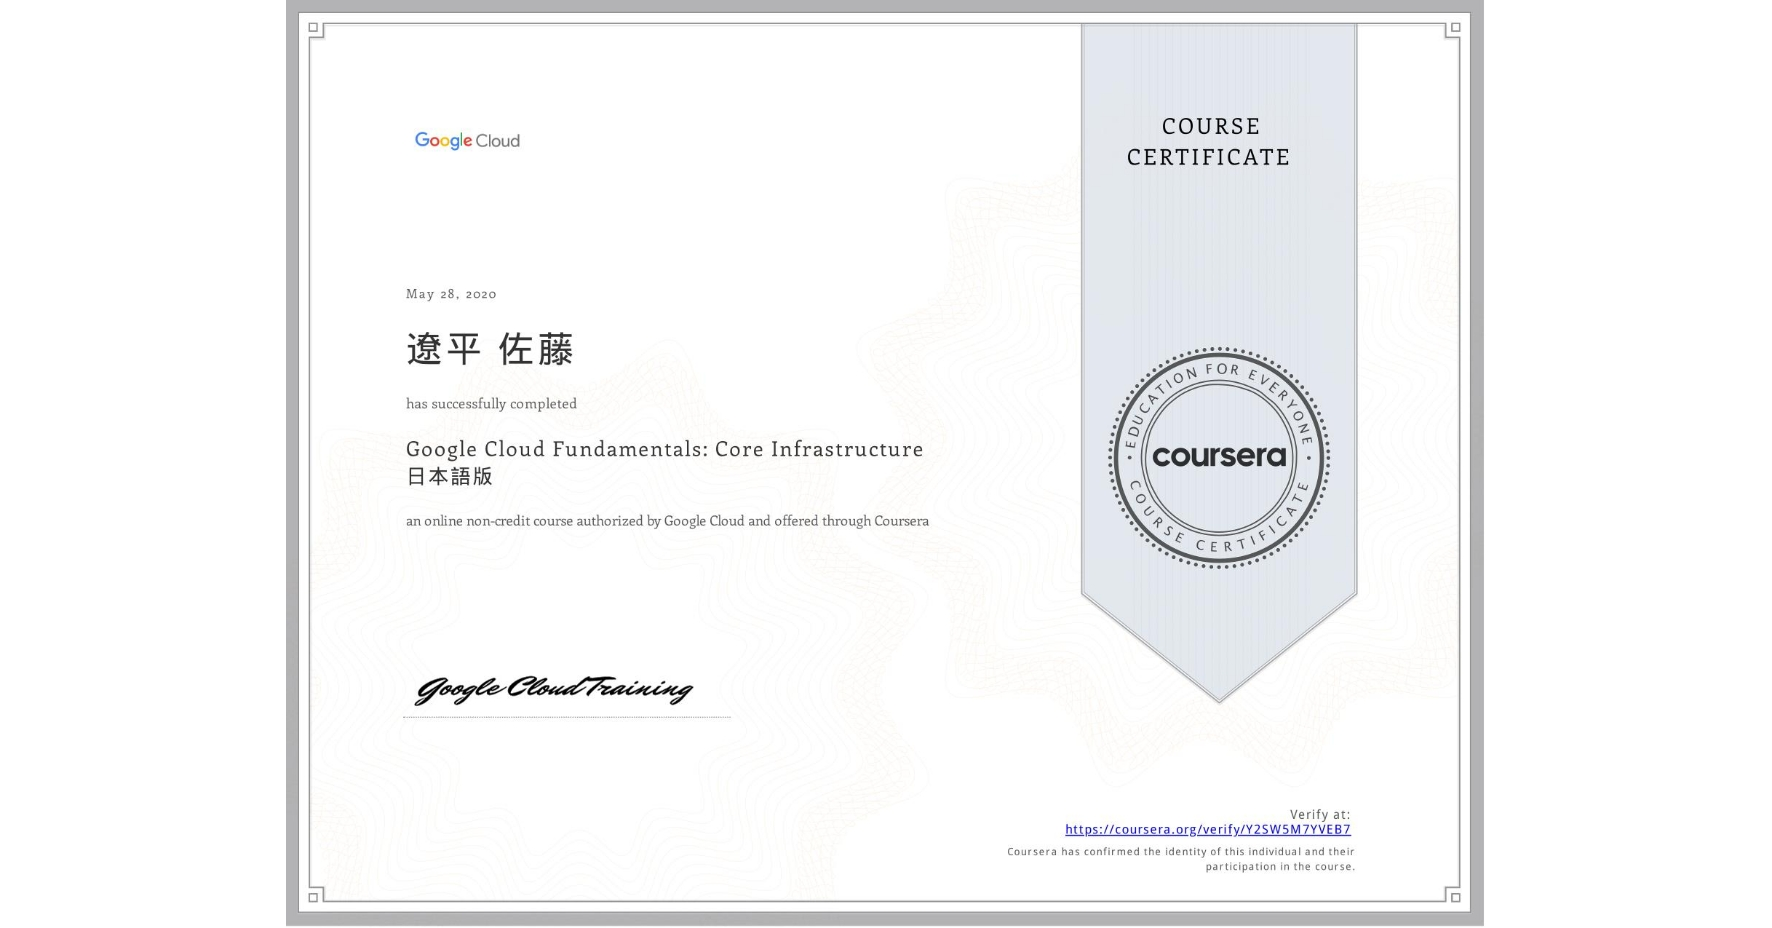 View certificate for 遼平 佐藤, Google Cloud Platform Fundamentals: Core Infrastructure 日本語版, an online non-credit course authorized by Google Cloud and offered through Coursera